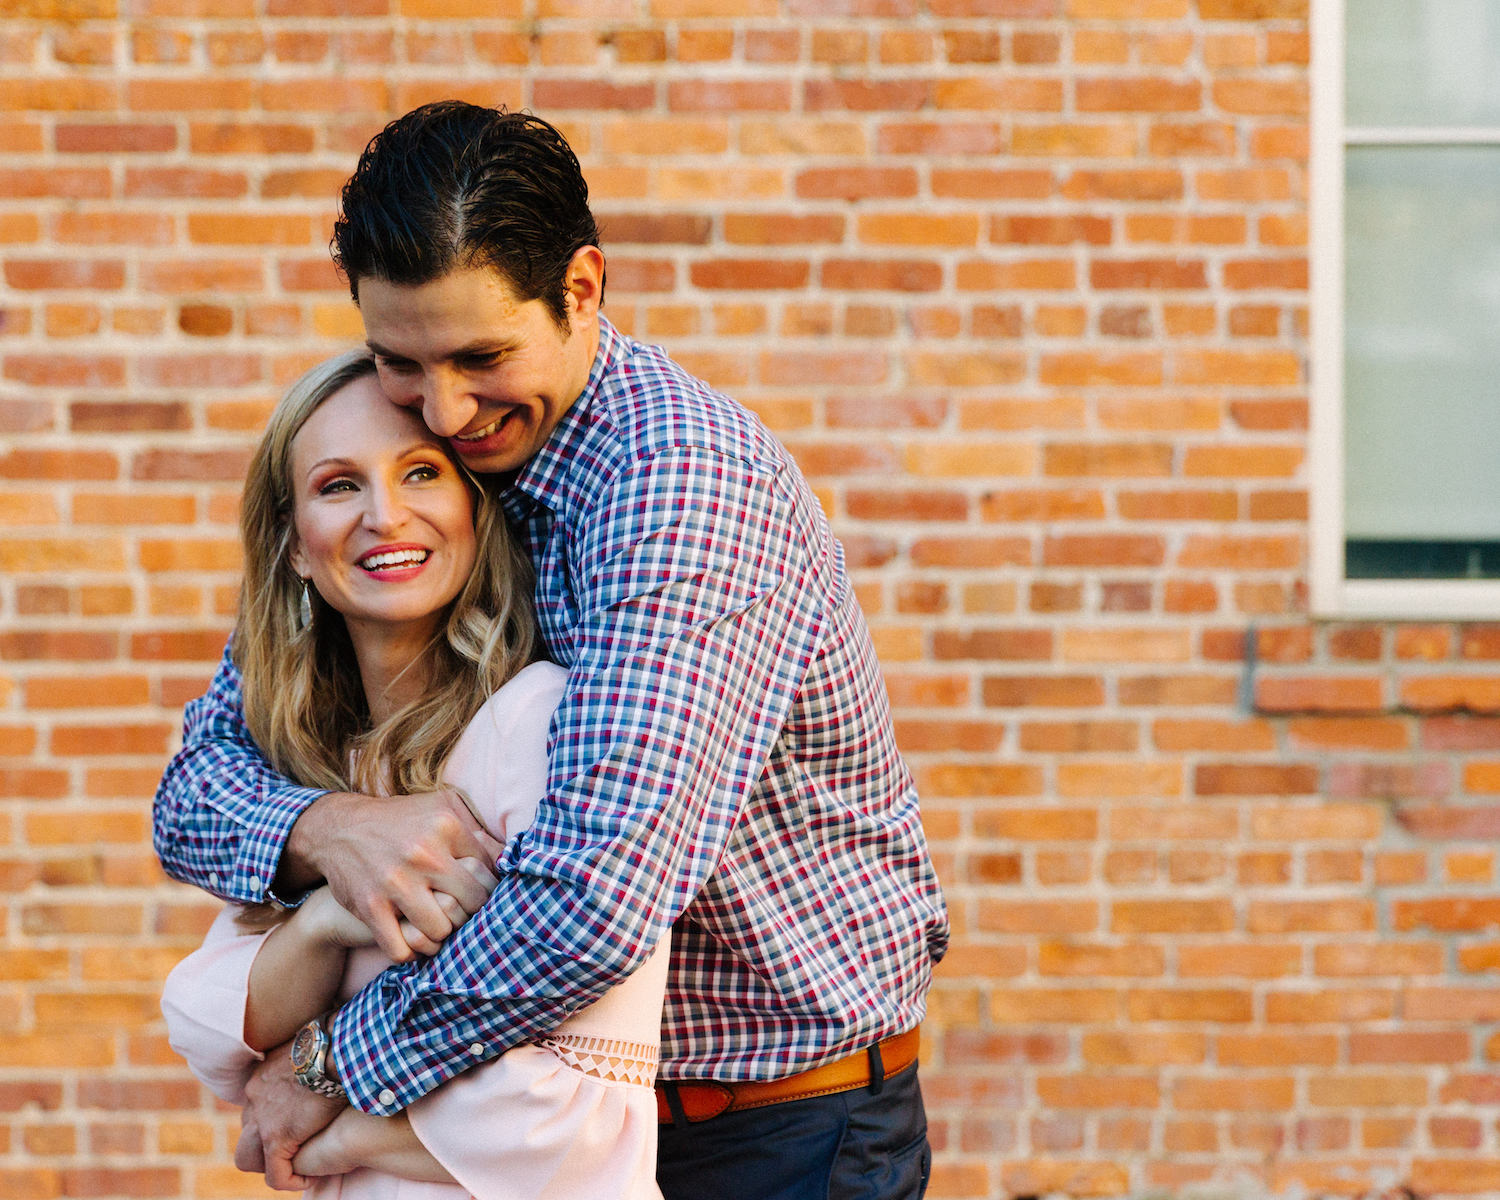 Miguel & Danielle - Engagement - Jake & Katie Photography_084.jpg